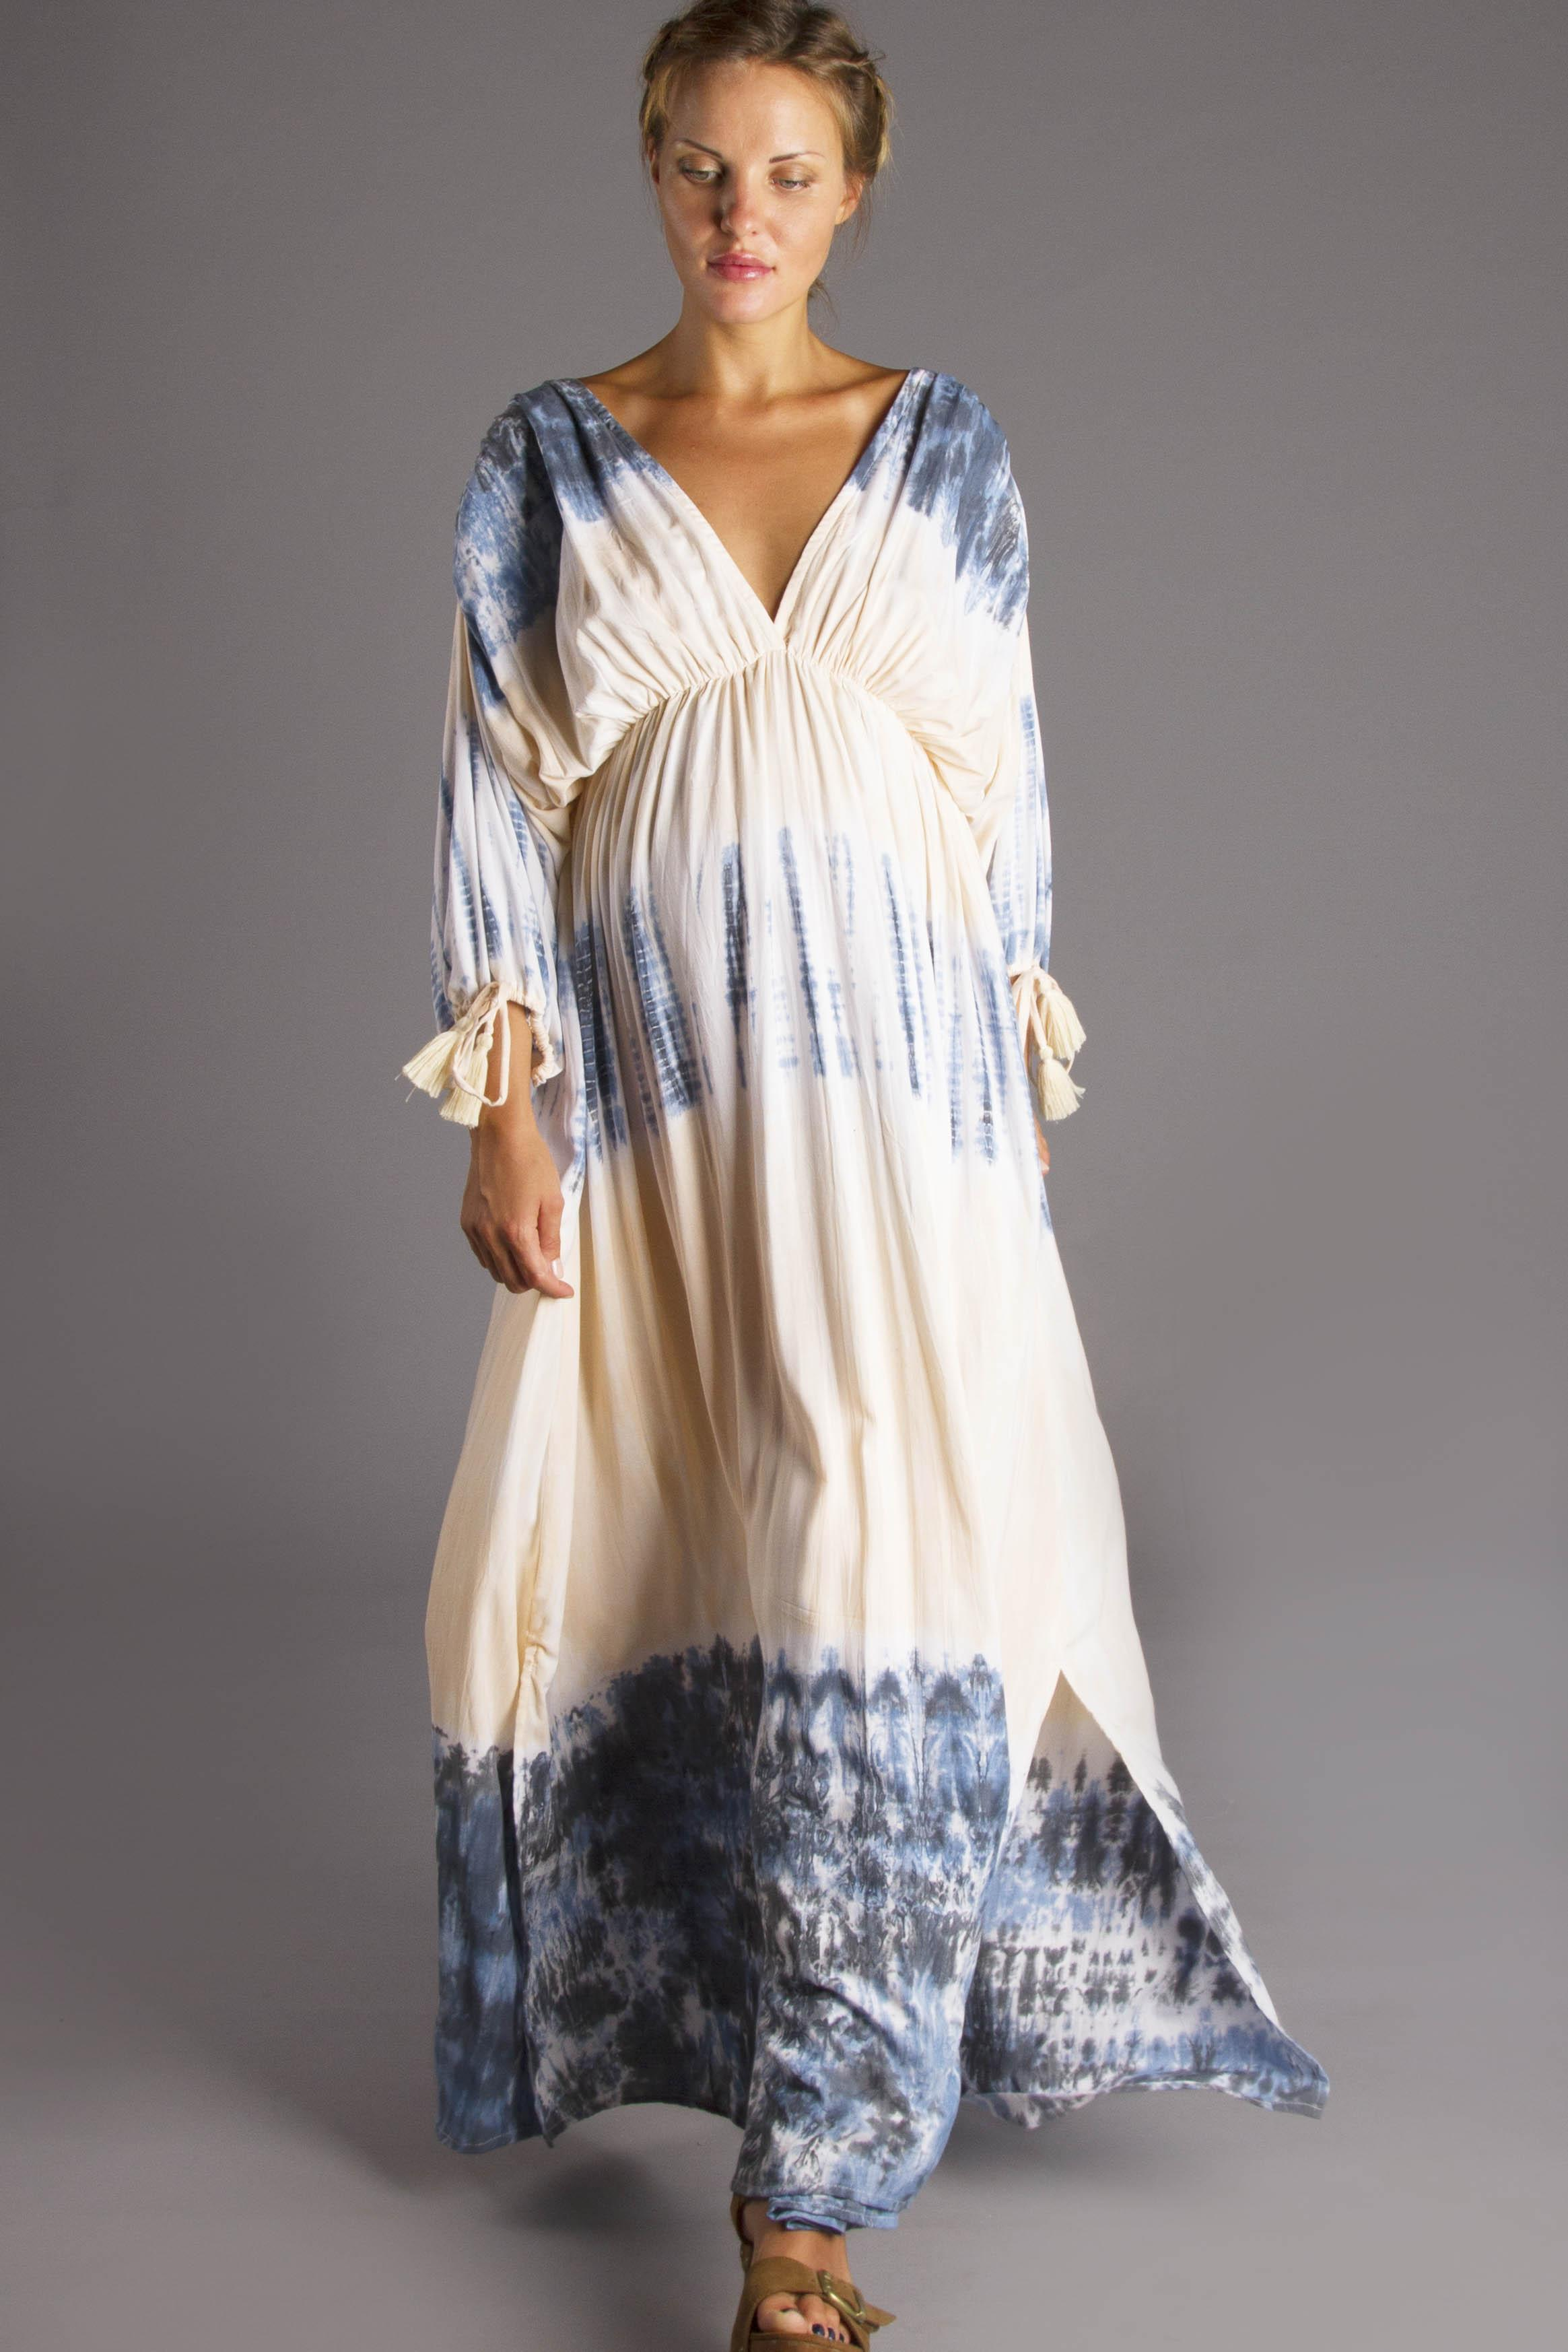 Martinque tie dye maternity maxi dress fillyboo boho inspired martinque tie dye maternity maxi dress fillyboo boho inspired maternity clothes online maternity dresses maternity tops and maternity jeans ombrellifo Choice Image